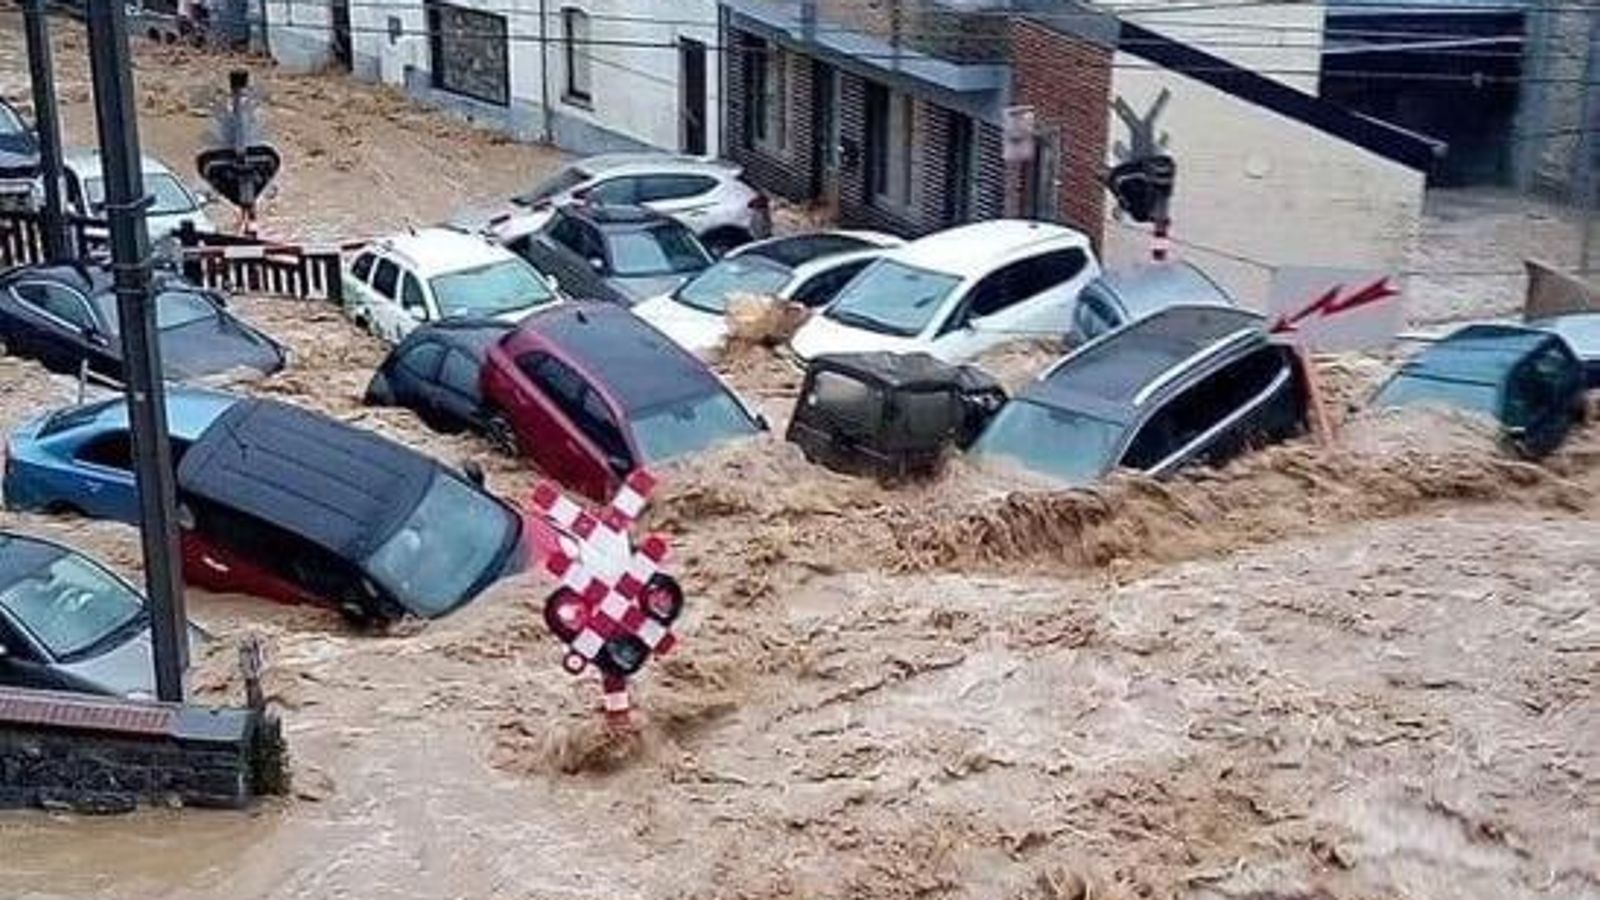 Belgium devastated by flooding for second time in just over a week